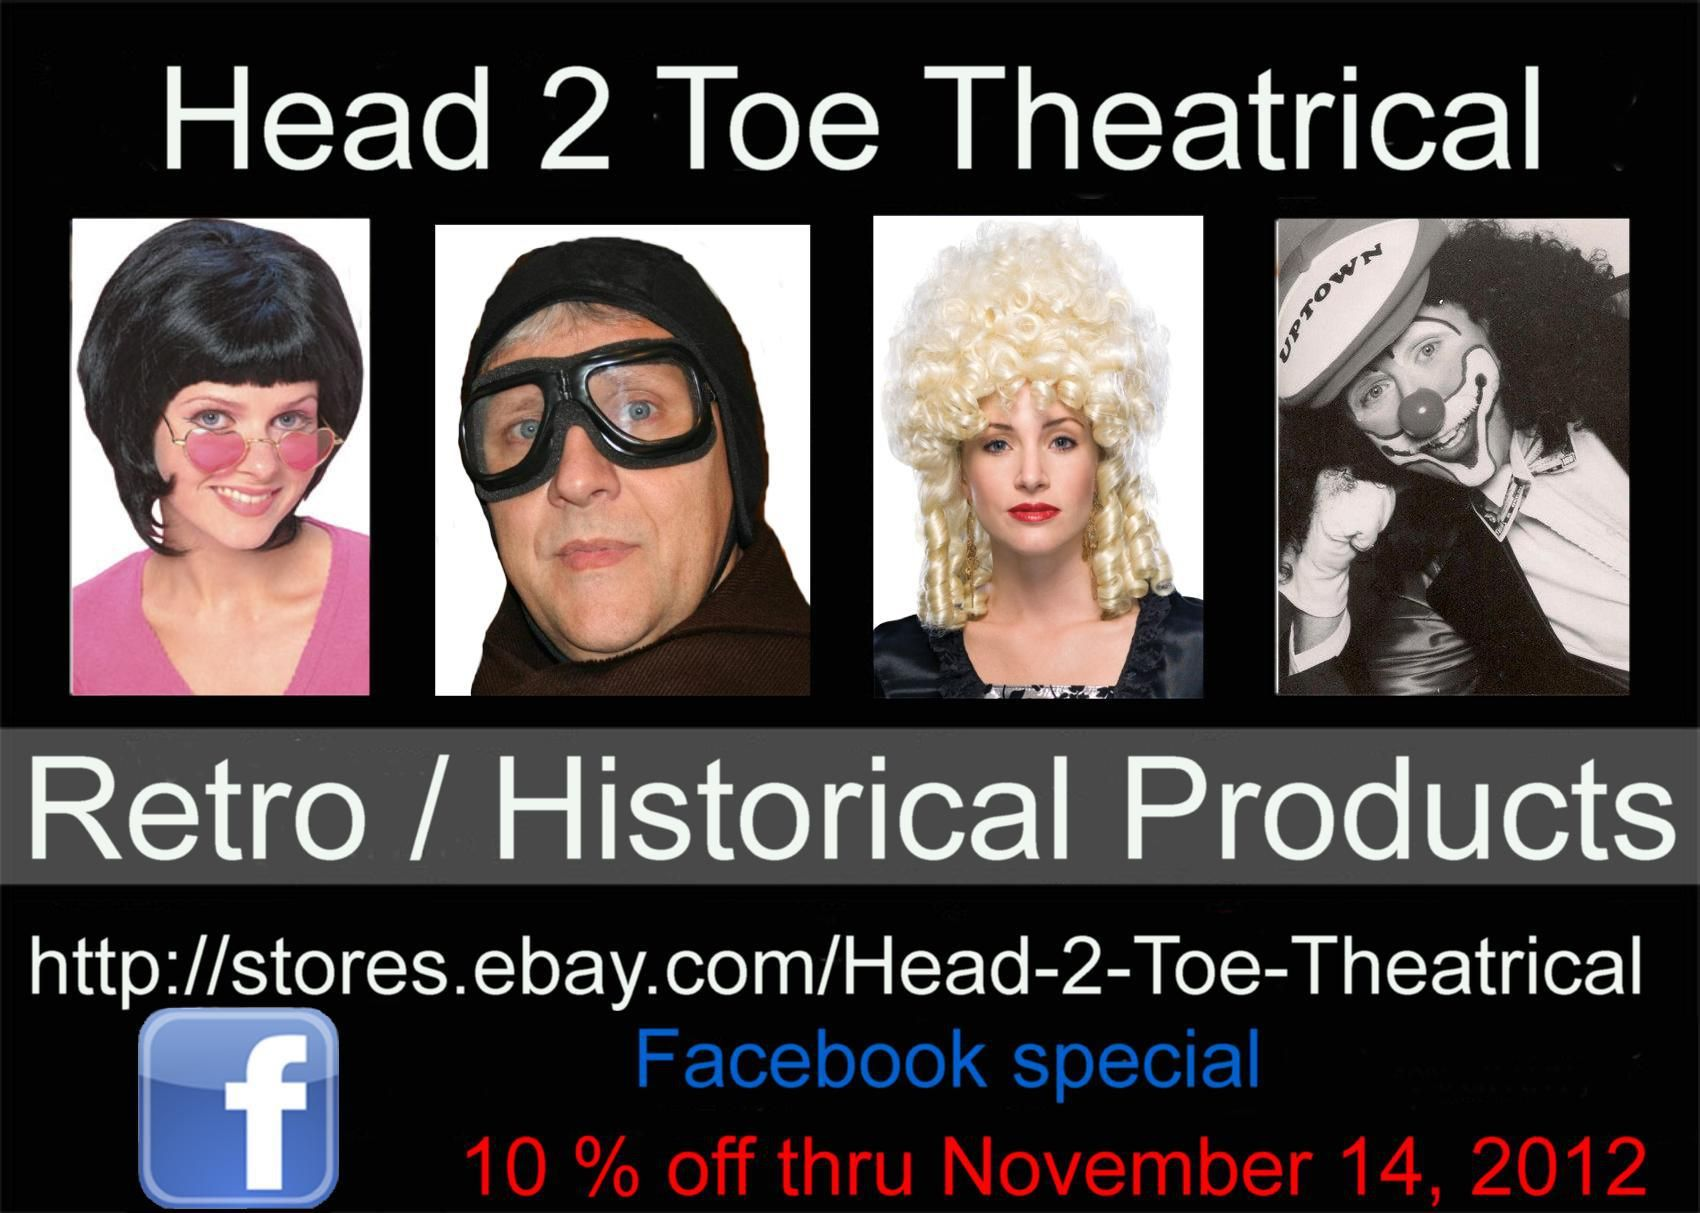 Retro / History Sale thru November 14, 2012.   http://stores.ebay.com/Head-2-Toe-Theatrical      	Hurry before it's a thing of the past. A historical sale like no other.      Save your gas as this is an online sale with FREE U.S. standard shipping and handling.  http://stores.ebay.com/Head-2-Toe-Theatrical/_i.html?rt=nc_SaleItems=1&_sid=83552709&_trksid=p4634.c0.m309